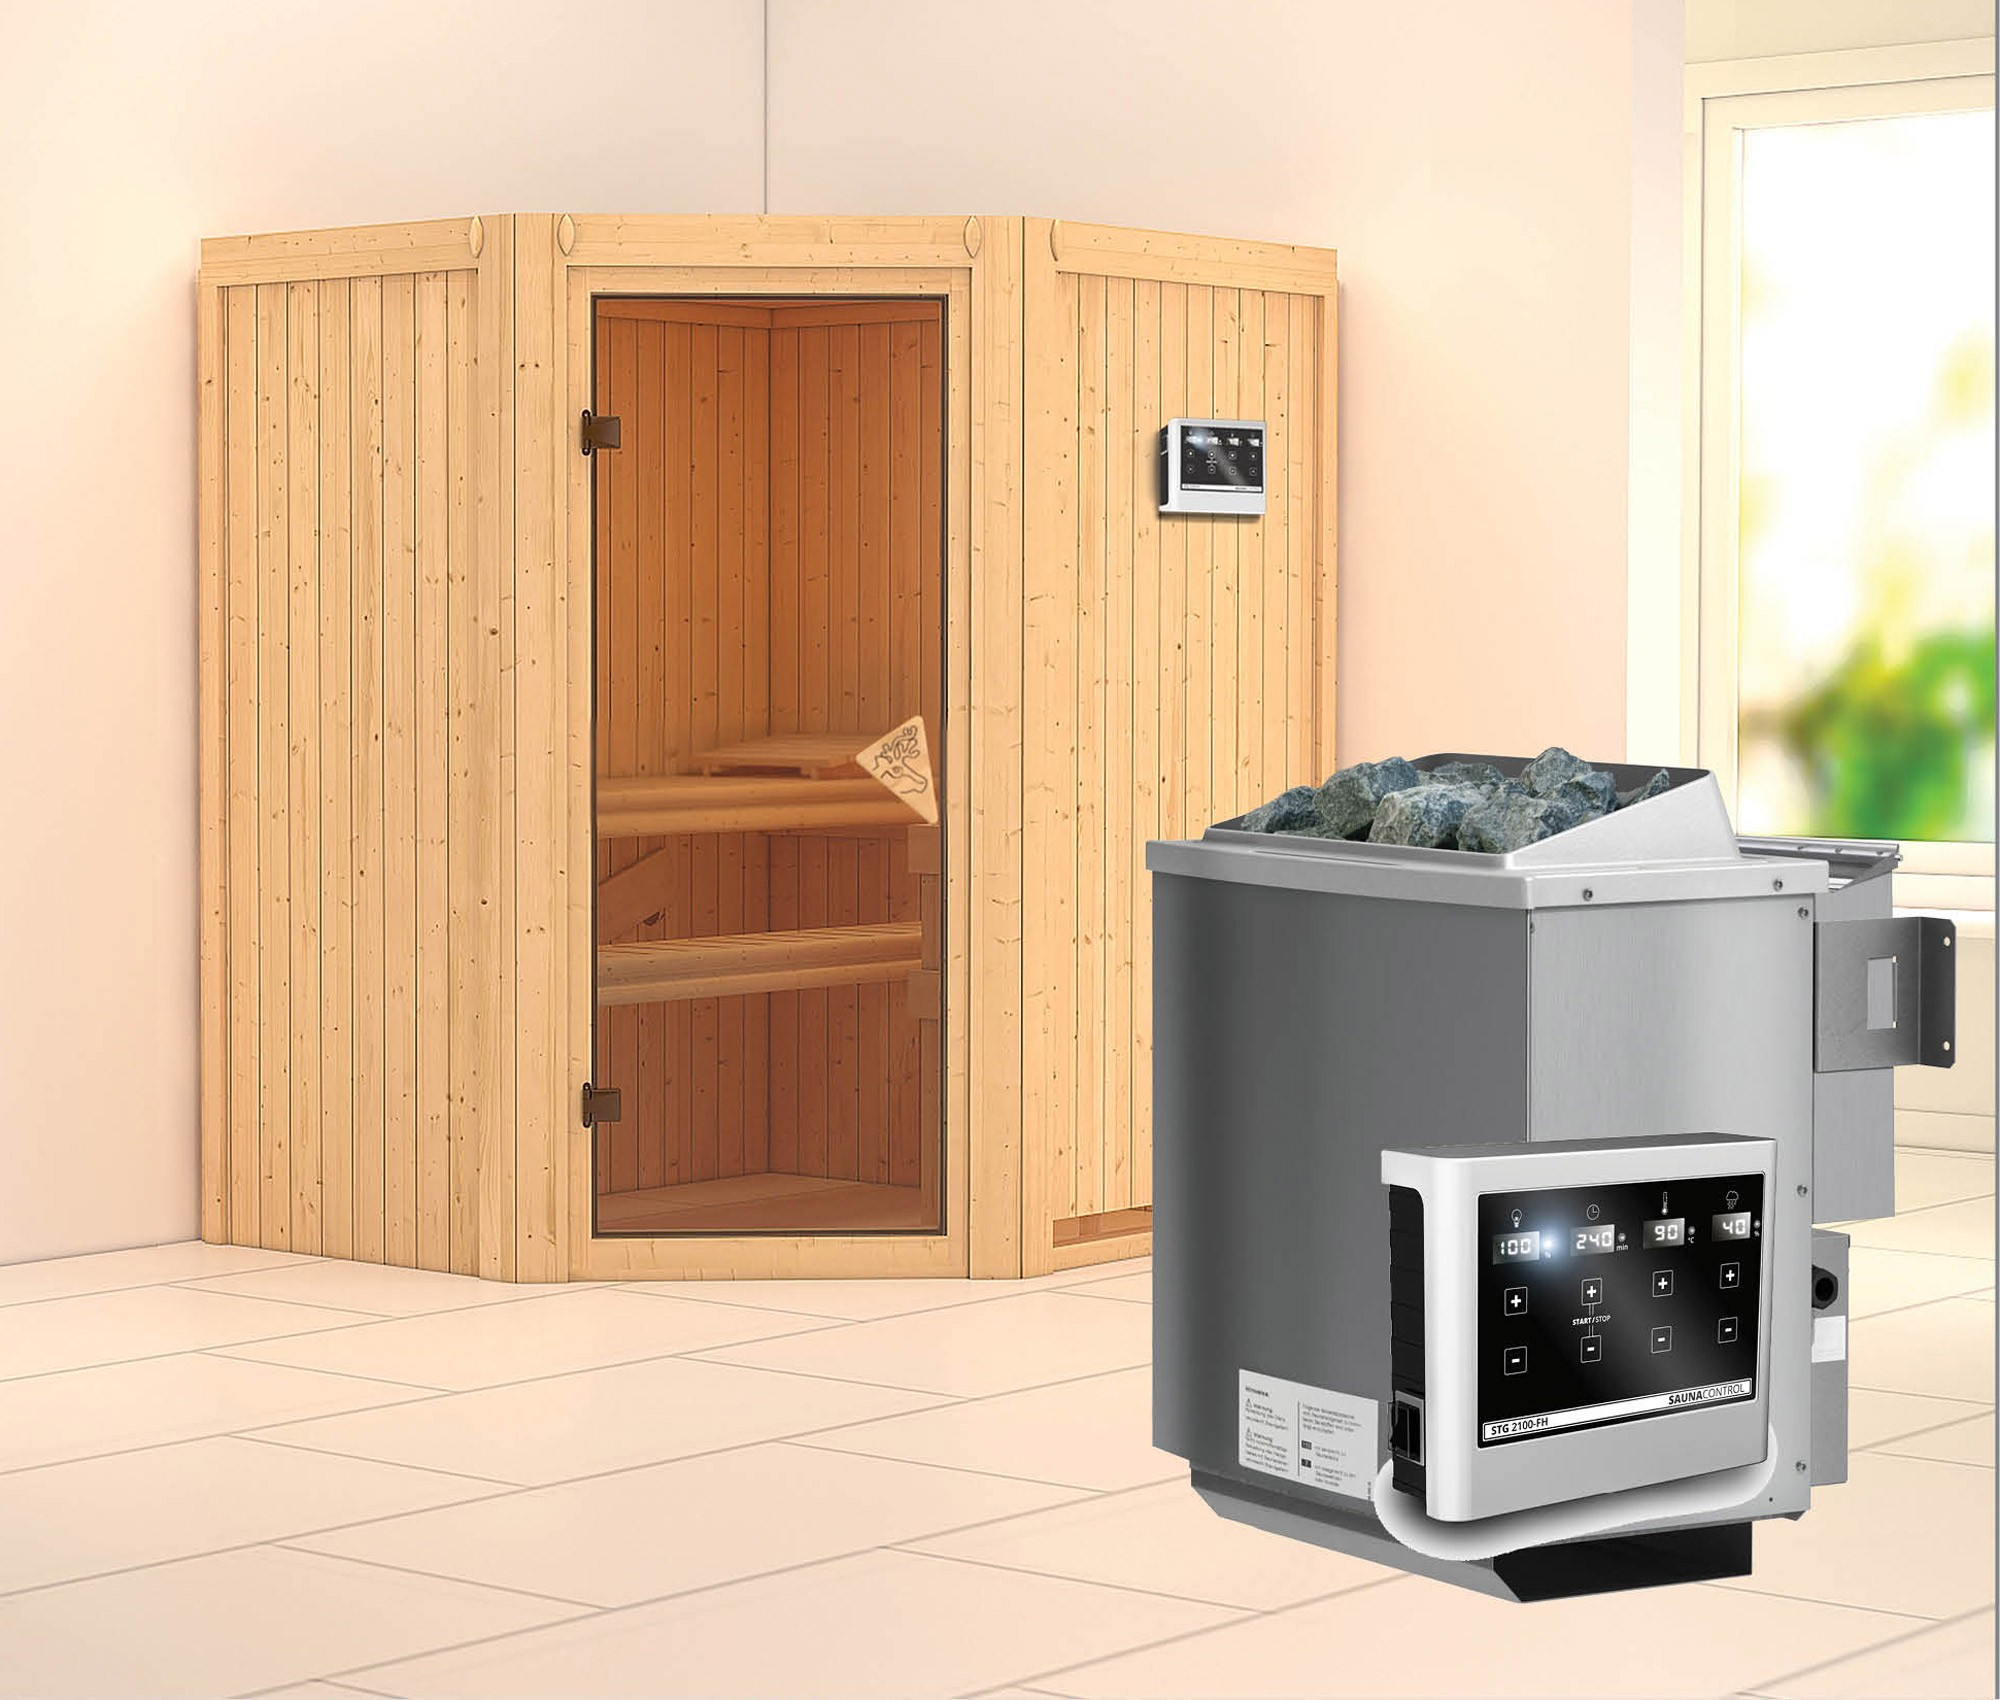 karibu sauna taurin 68mm mit bio ofen 9kw extern classic. Black Bedroom Furniture Sets. Home Design Ideas